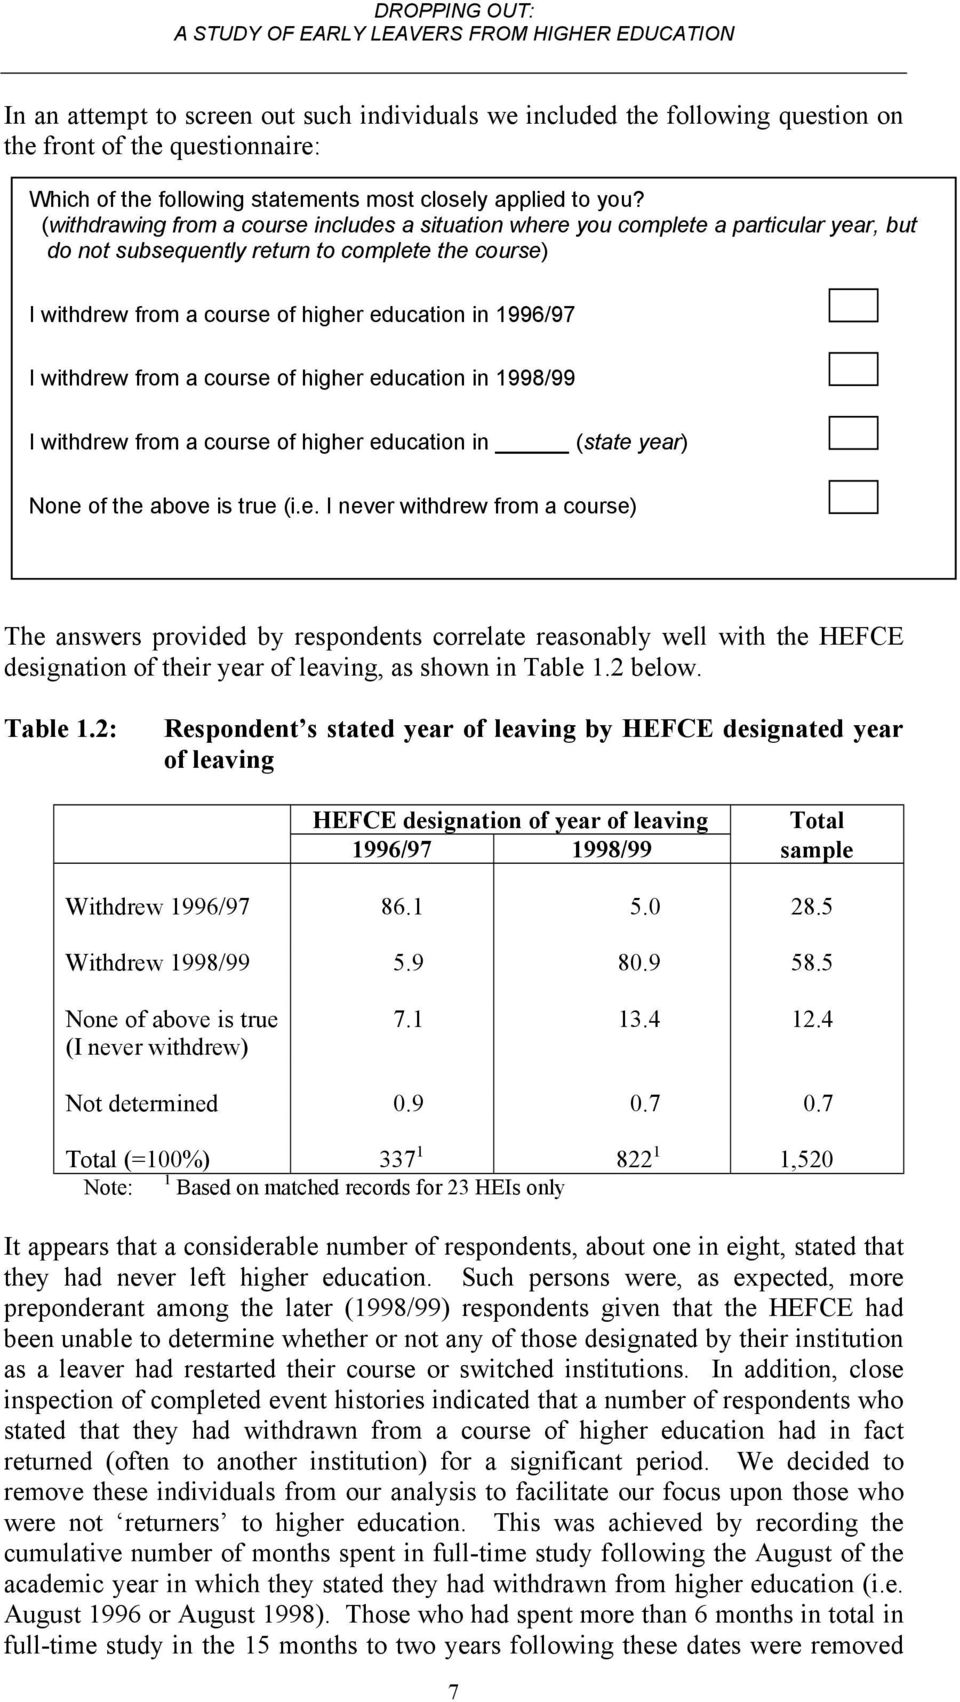 withdrew from a course of higher education in 1998/99 I withdrew from a course of higher education in (state year) None of the above is true (i.e. I never withdrew from a course) The answers provided by respondents correlate reasonably well with the HEFCE designation of their year of leaving, as shown in Table 1.